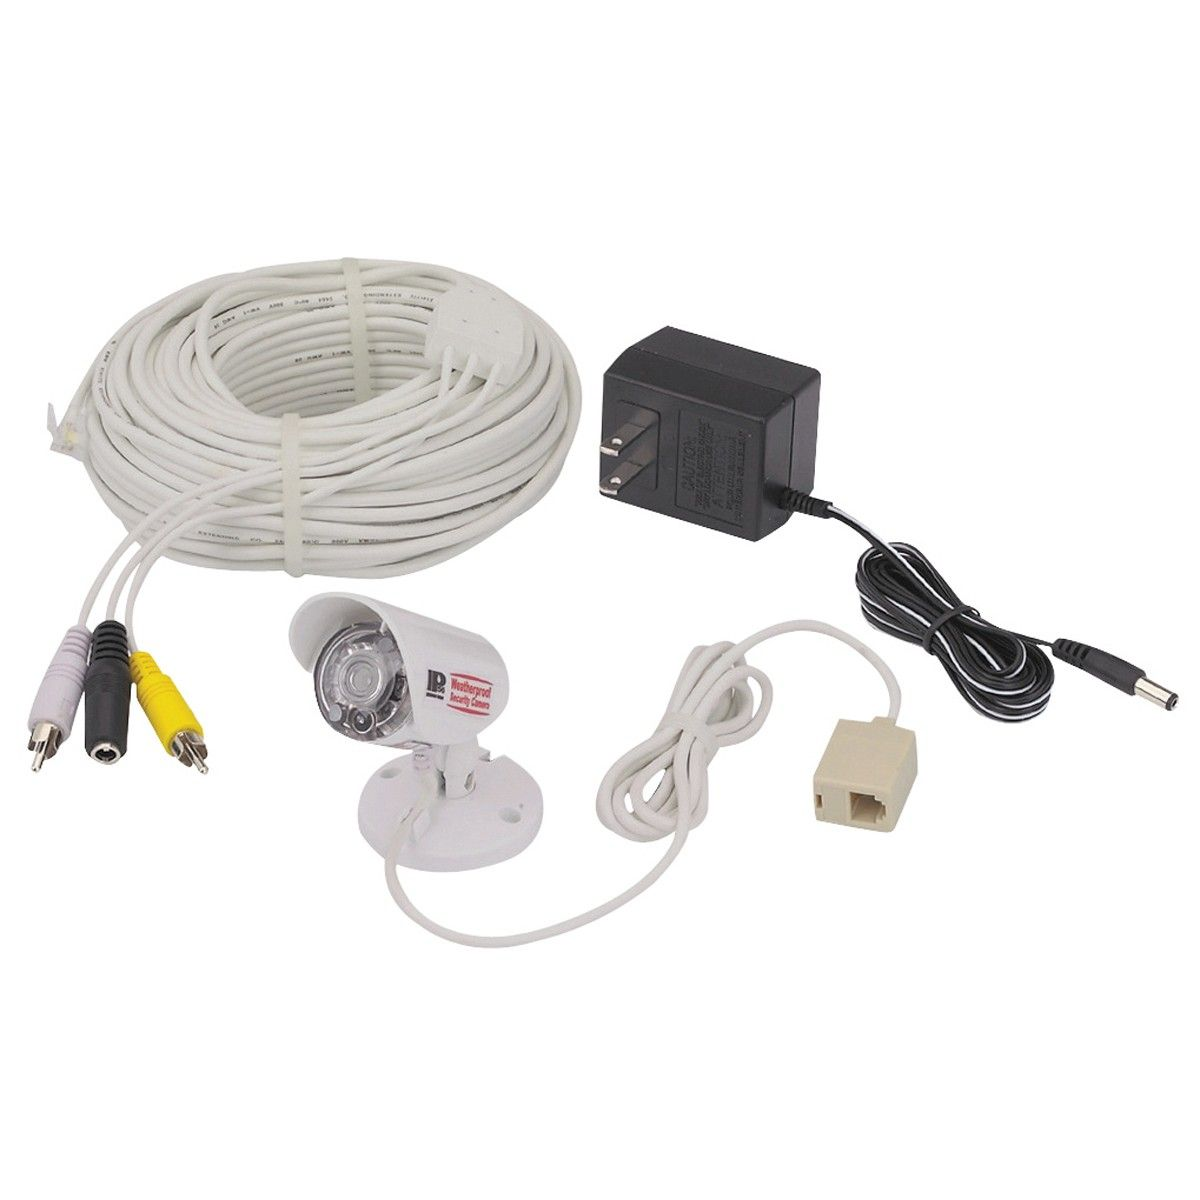 harbor freight security camera 47546 wiring diagram are you Security Camera Wiring Types